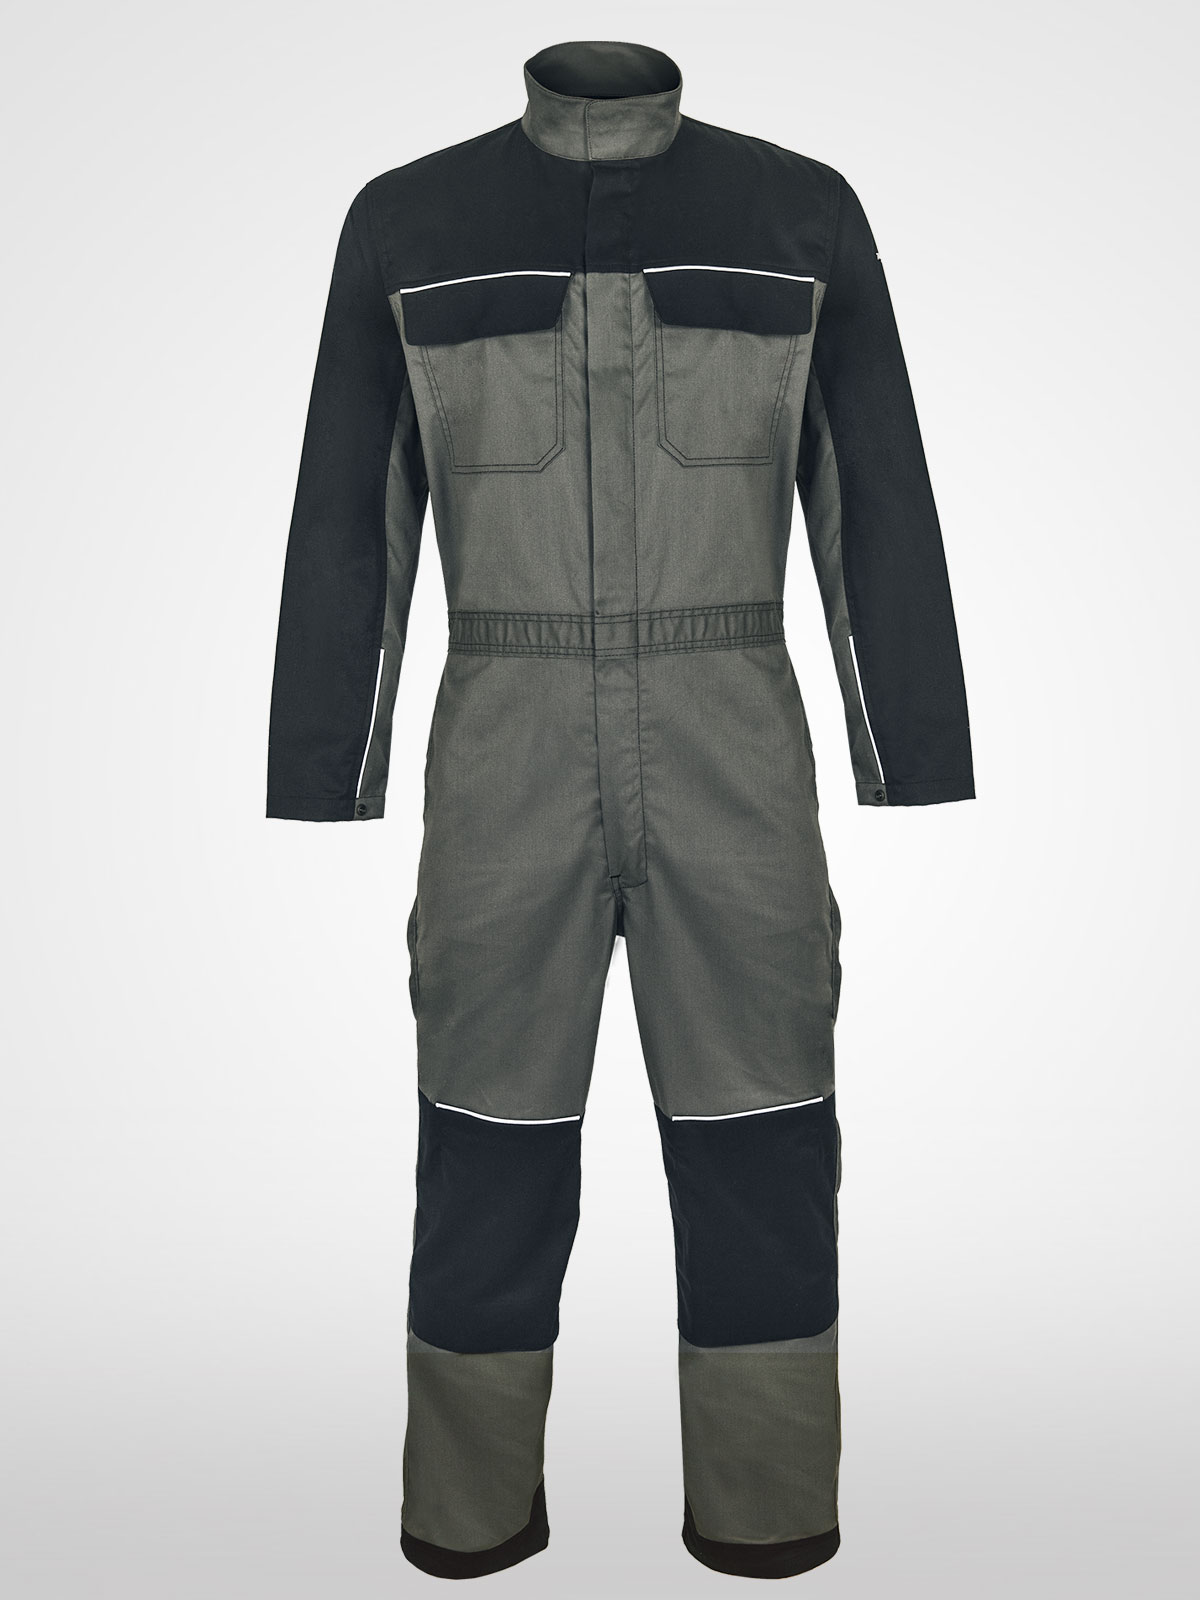 Fire Protection Coveralls